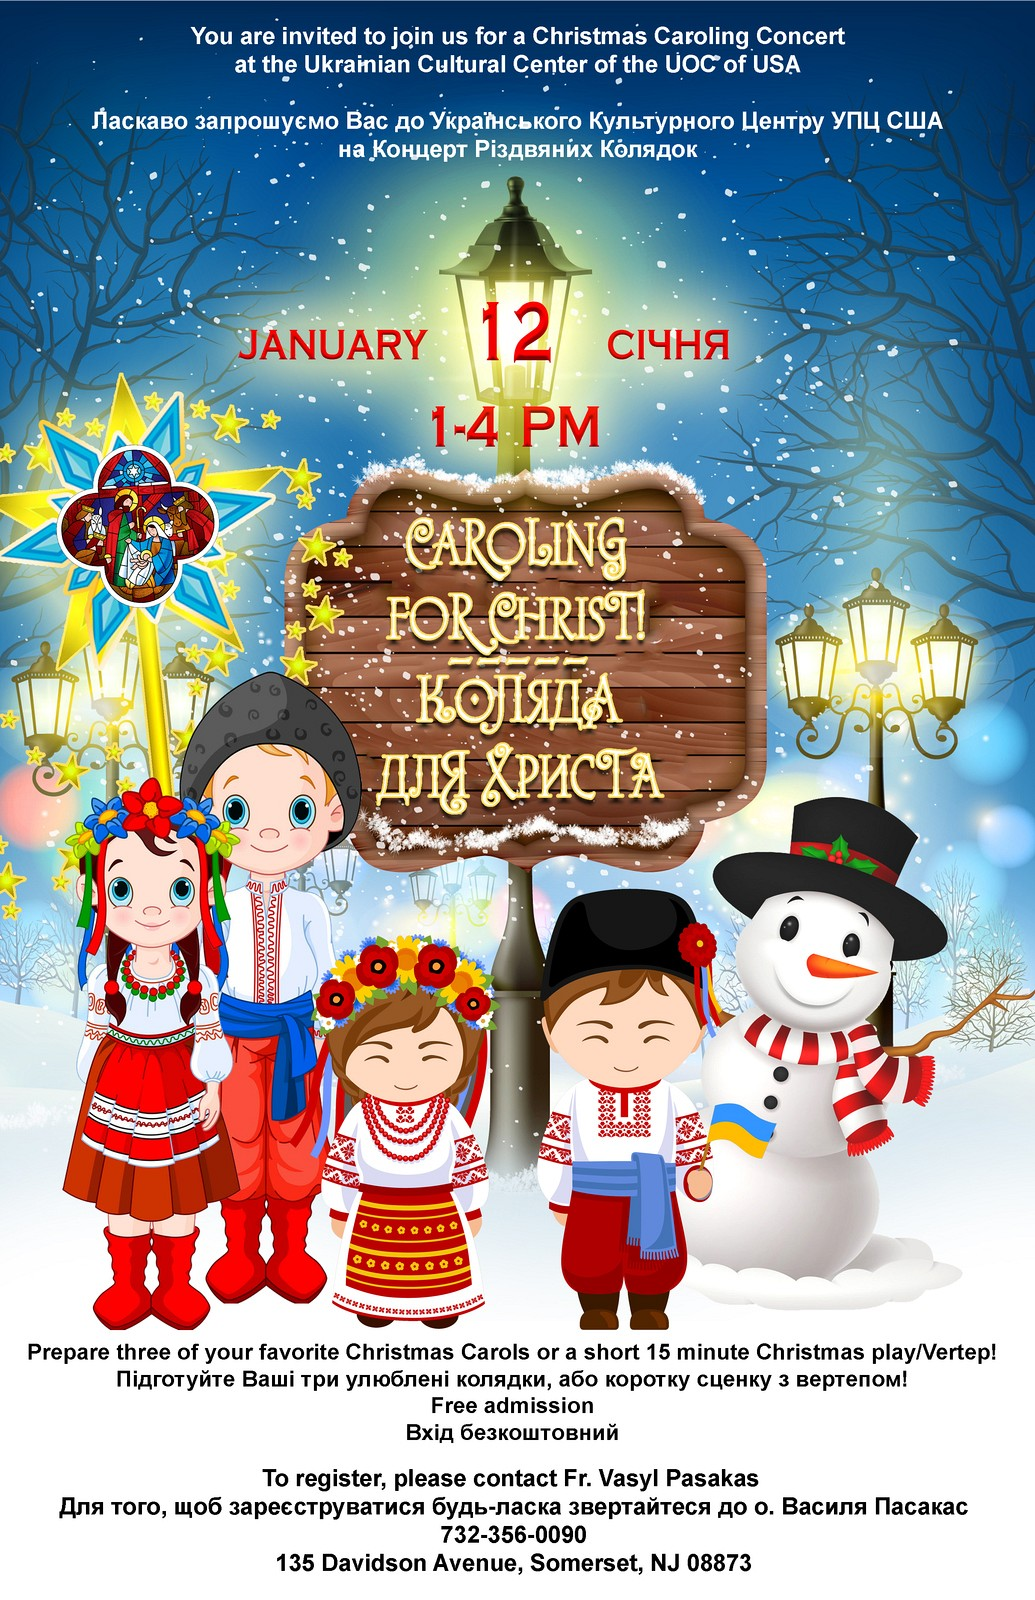 Orthodox Christmas 2019.12 January 2019 Annual Caroling For Christ Ukrainian